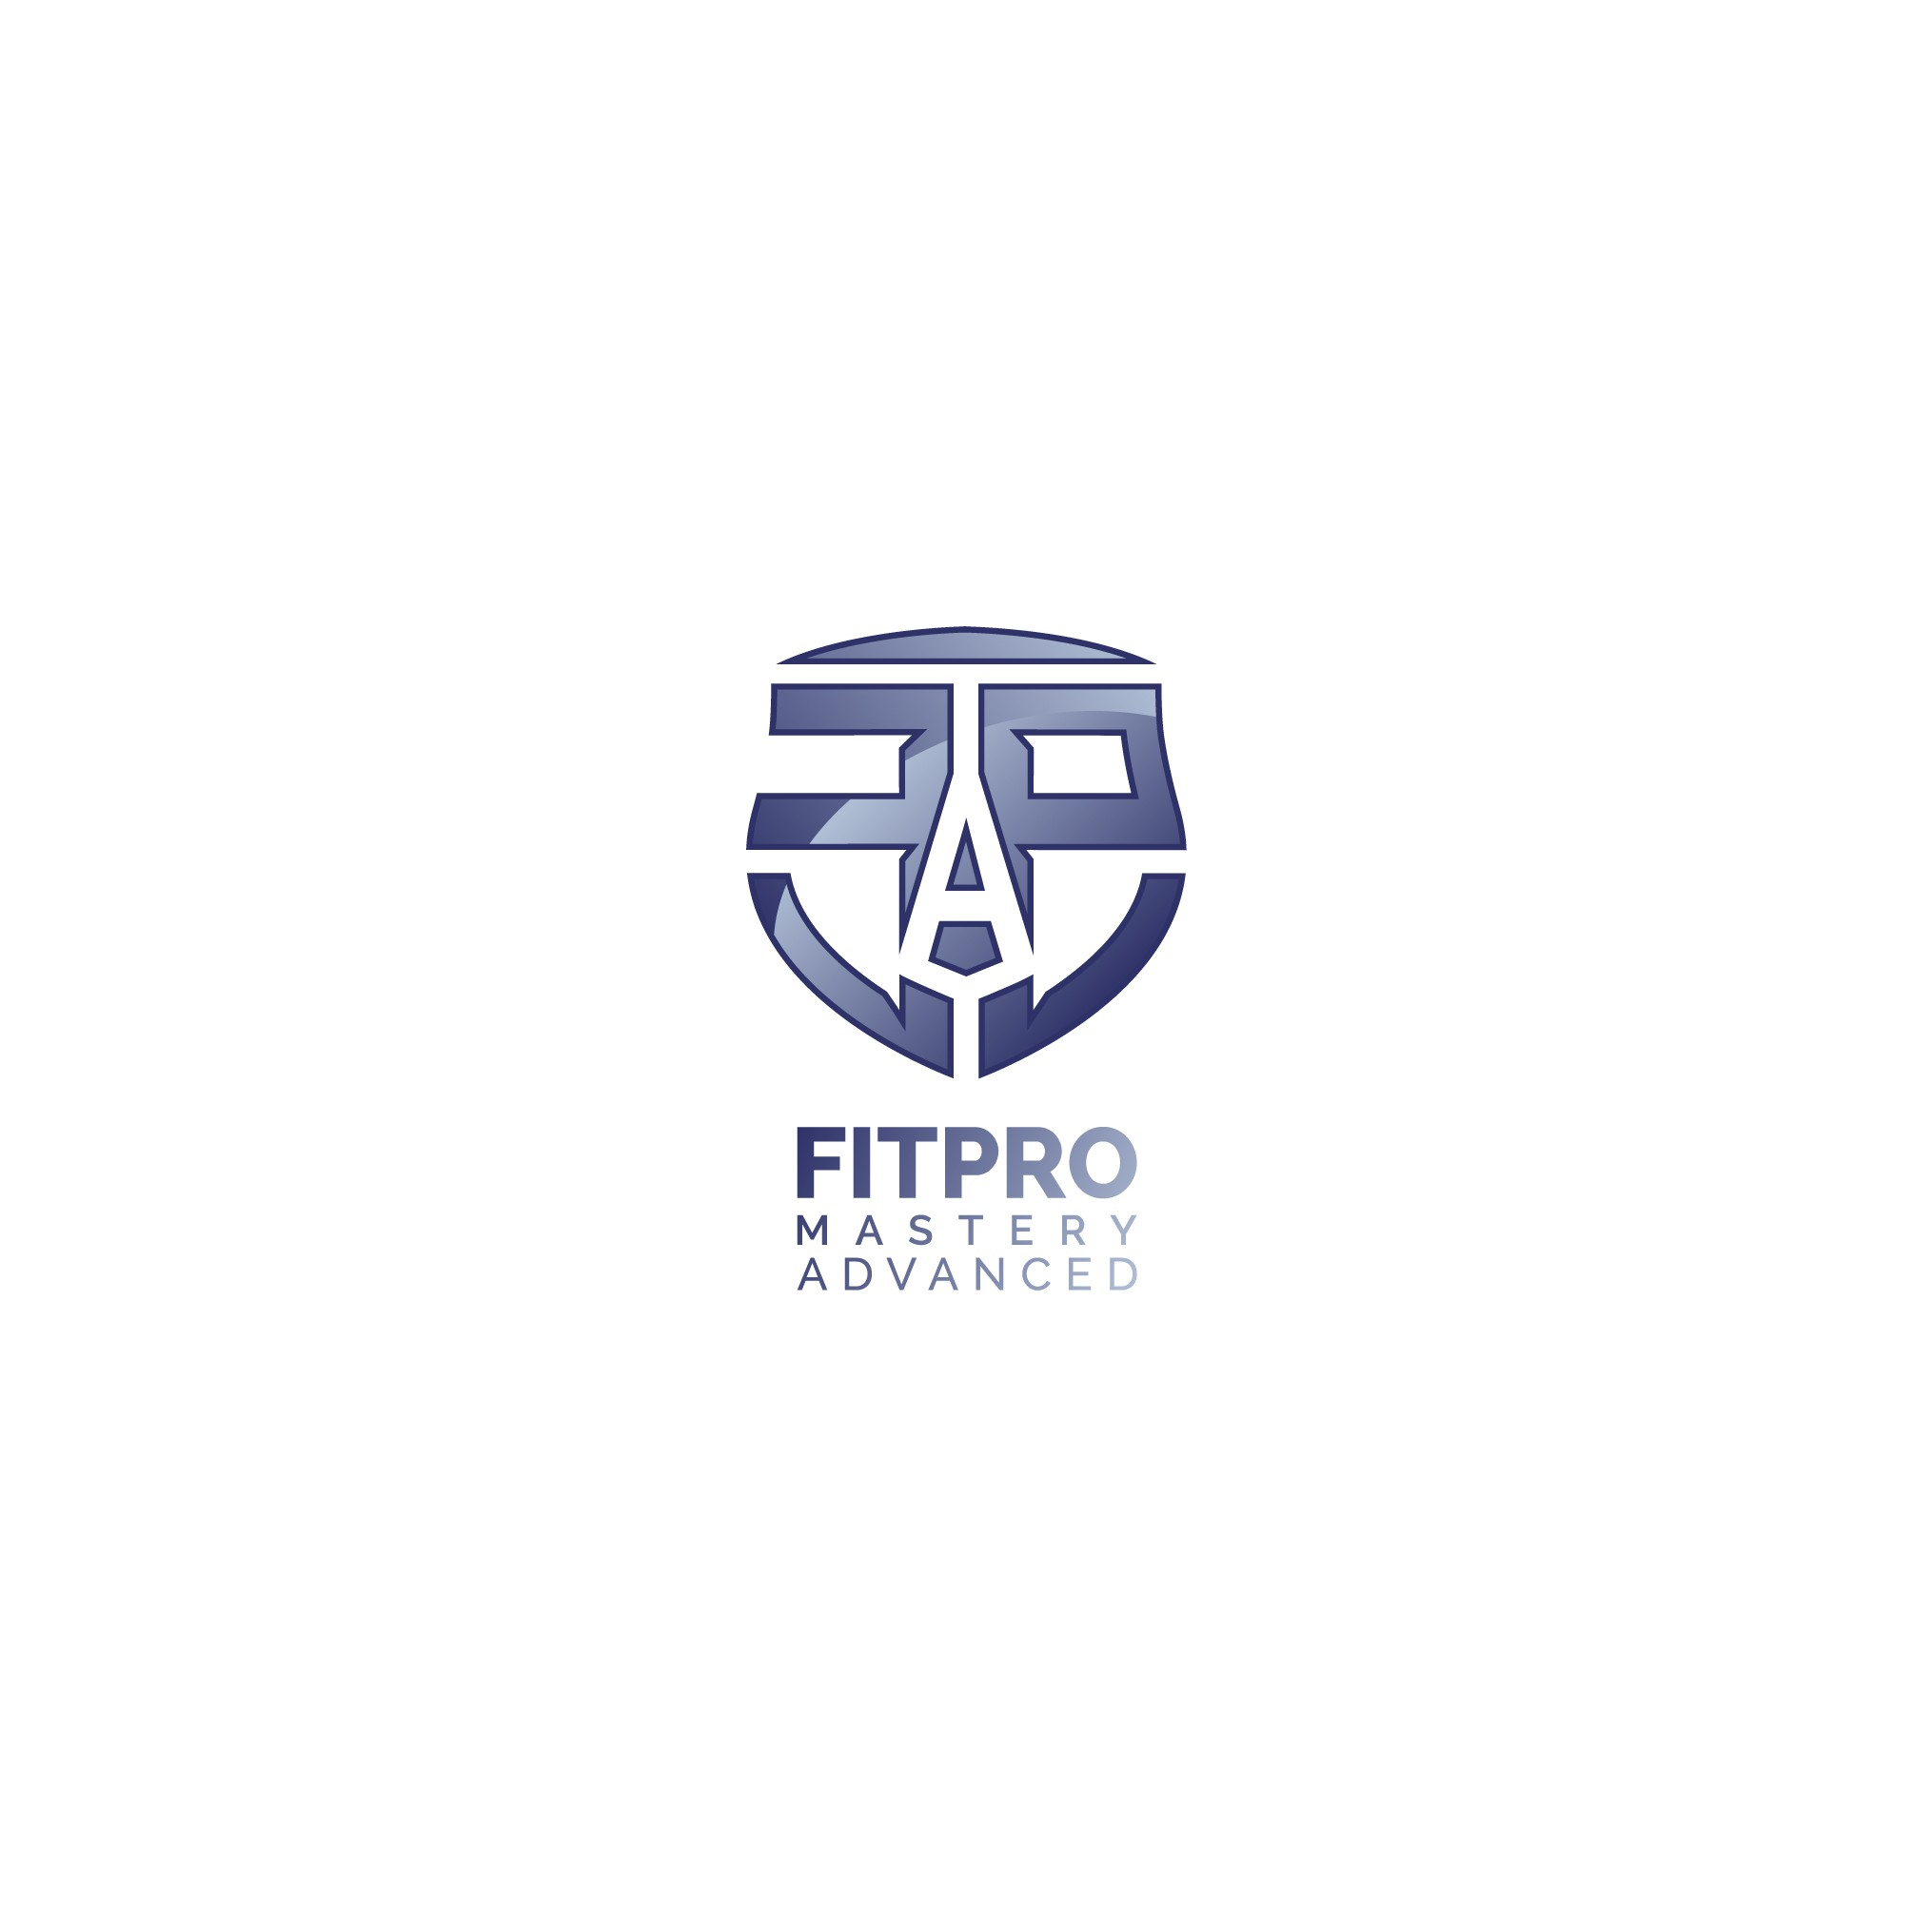 3 logos, FB Ad Hero, Fitpro Mastery Advanced and Fitpeuners Corporate Training